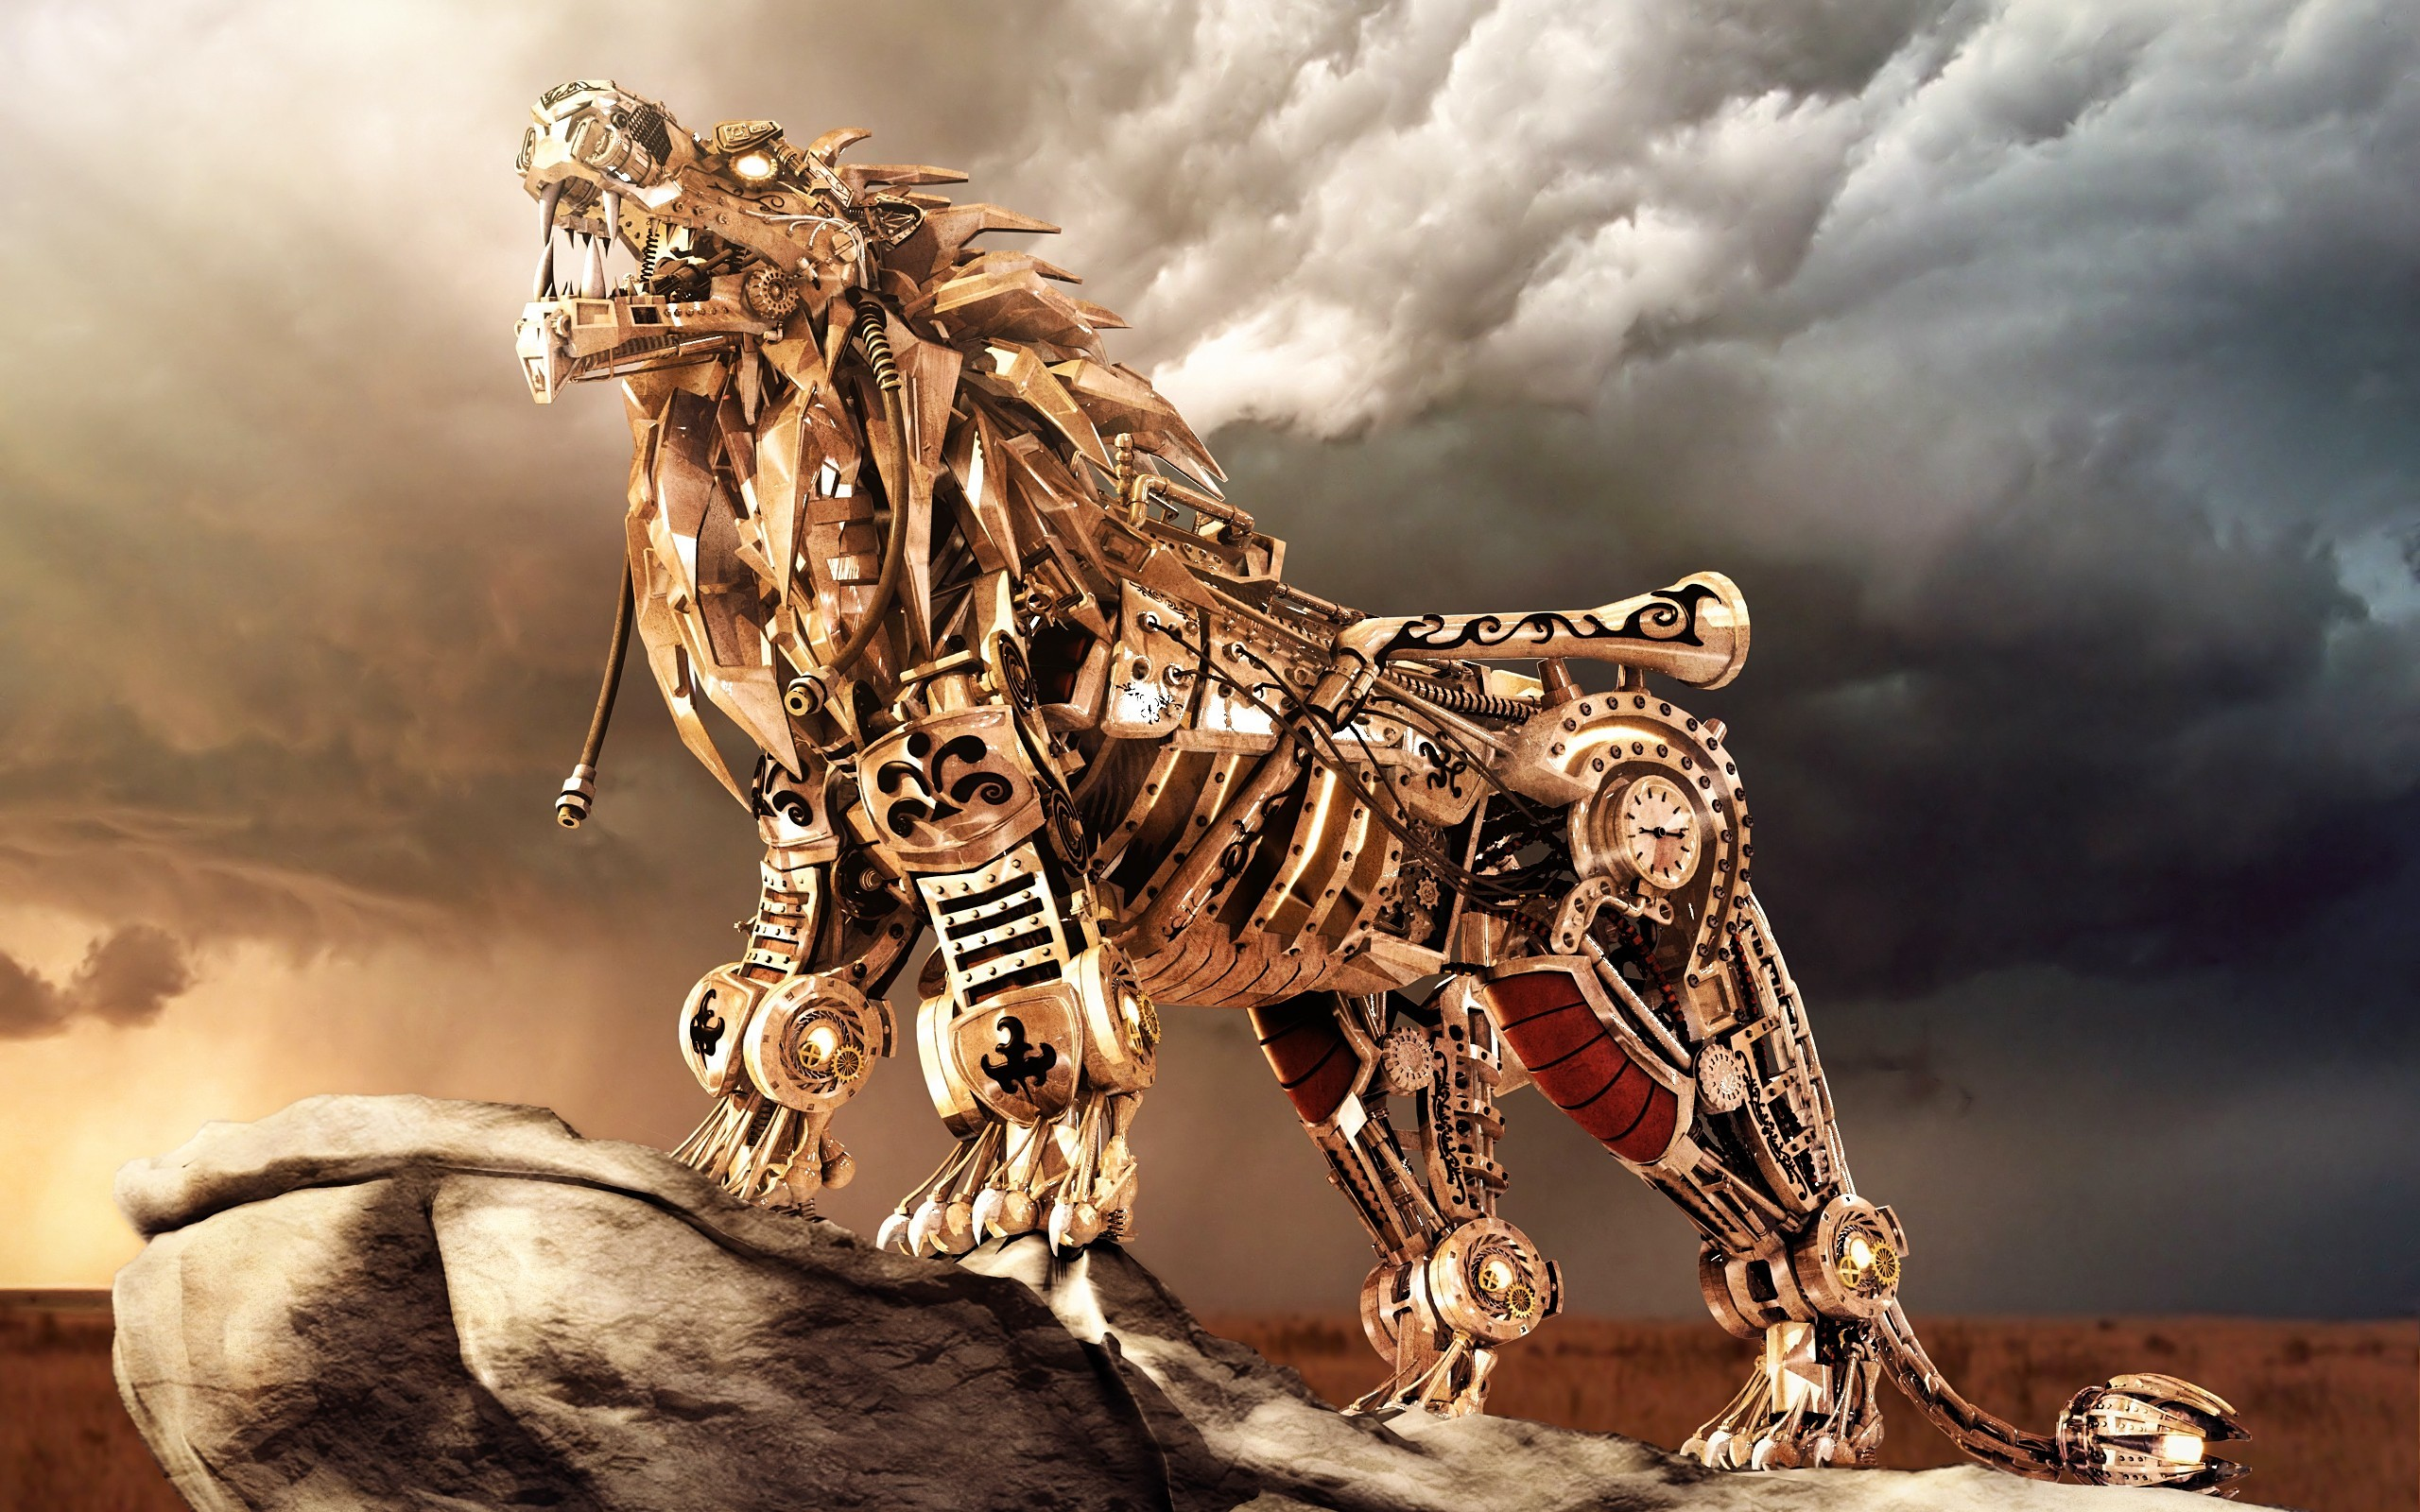 robots digital art lions mechanical creature wallpaper